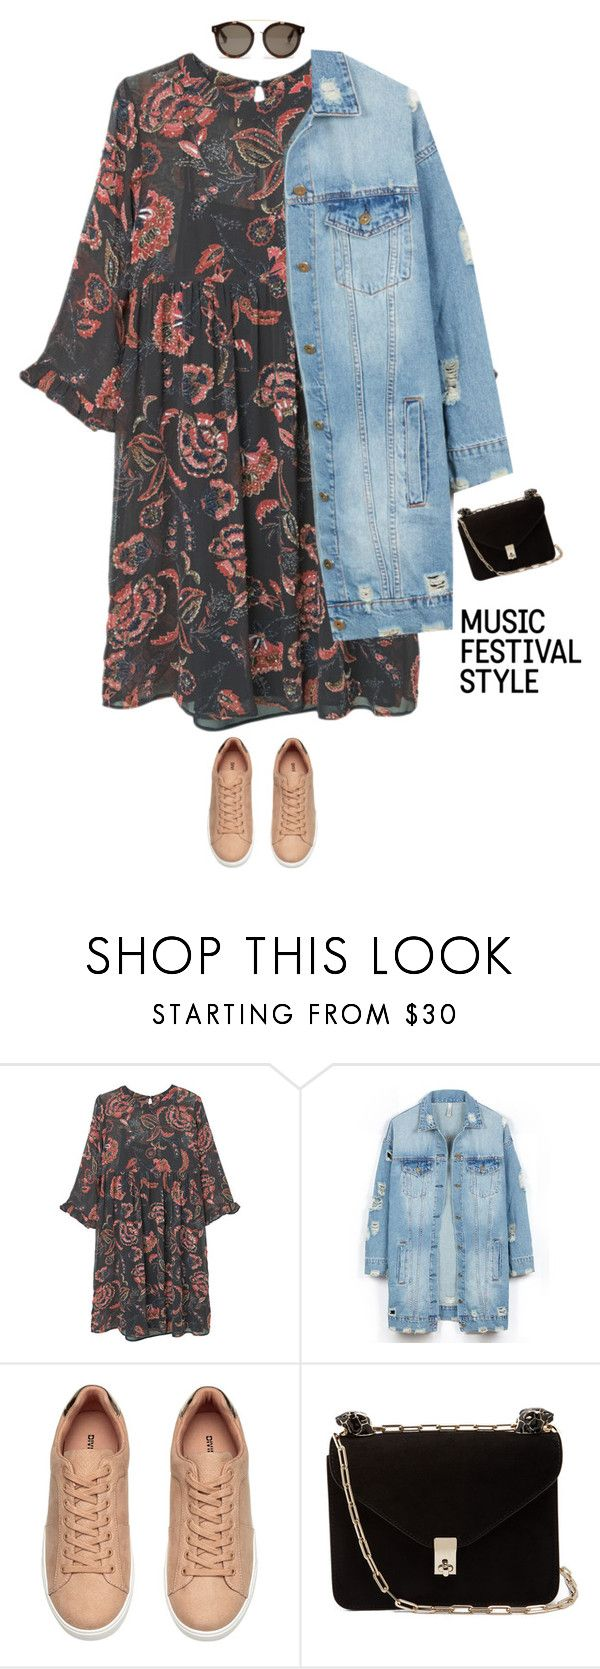 """Show Time: Best Festival Trend"" by beachkidwithdirtyvans ❤ liked on Polyvore featuring MANGO, LE3NO, Valentino and STELLA McCARTNEY"